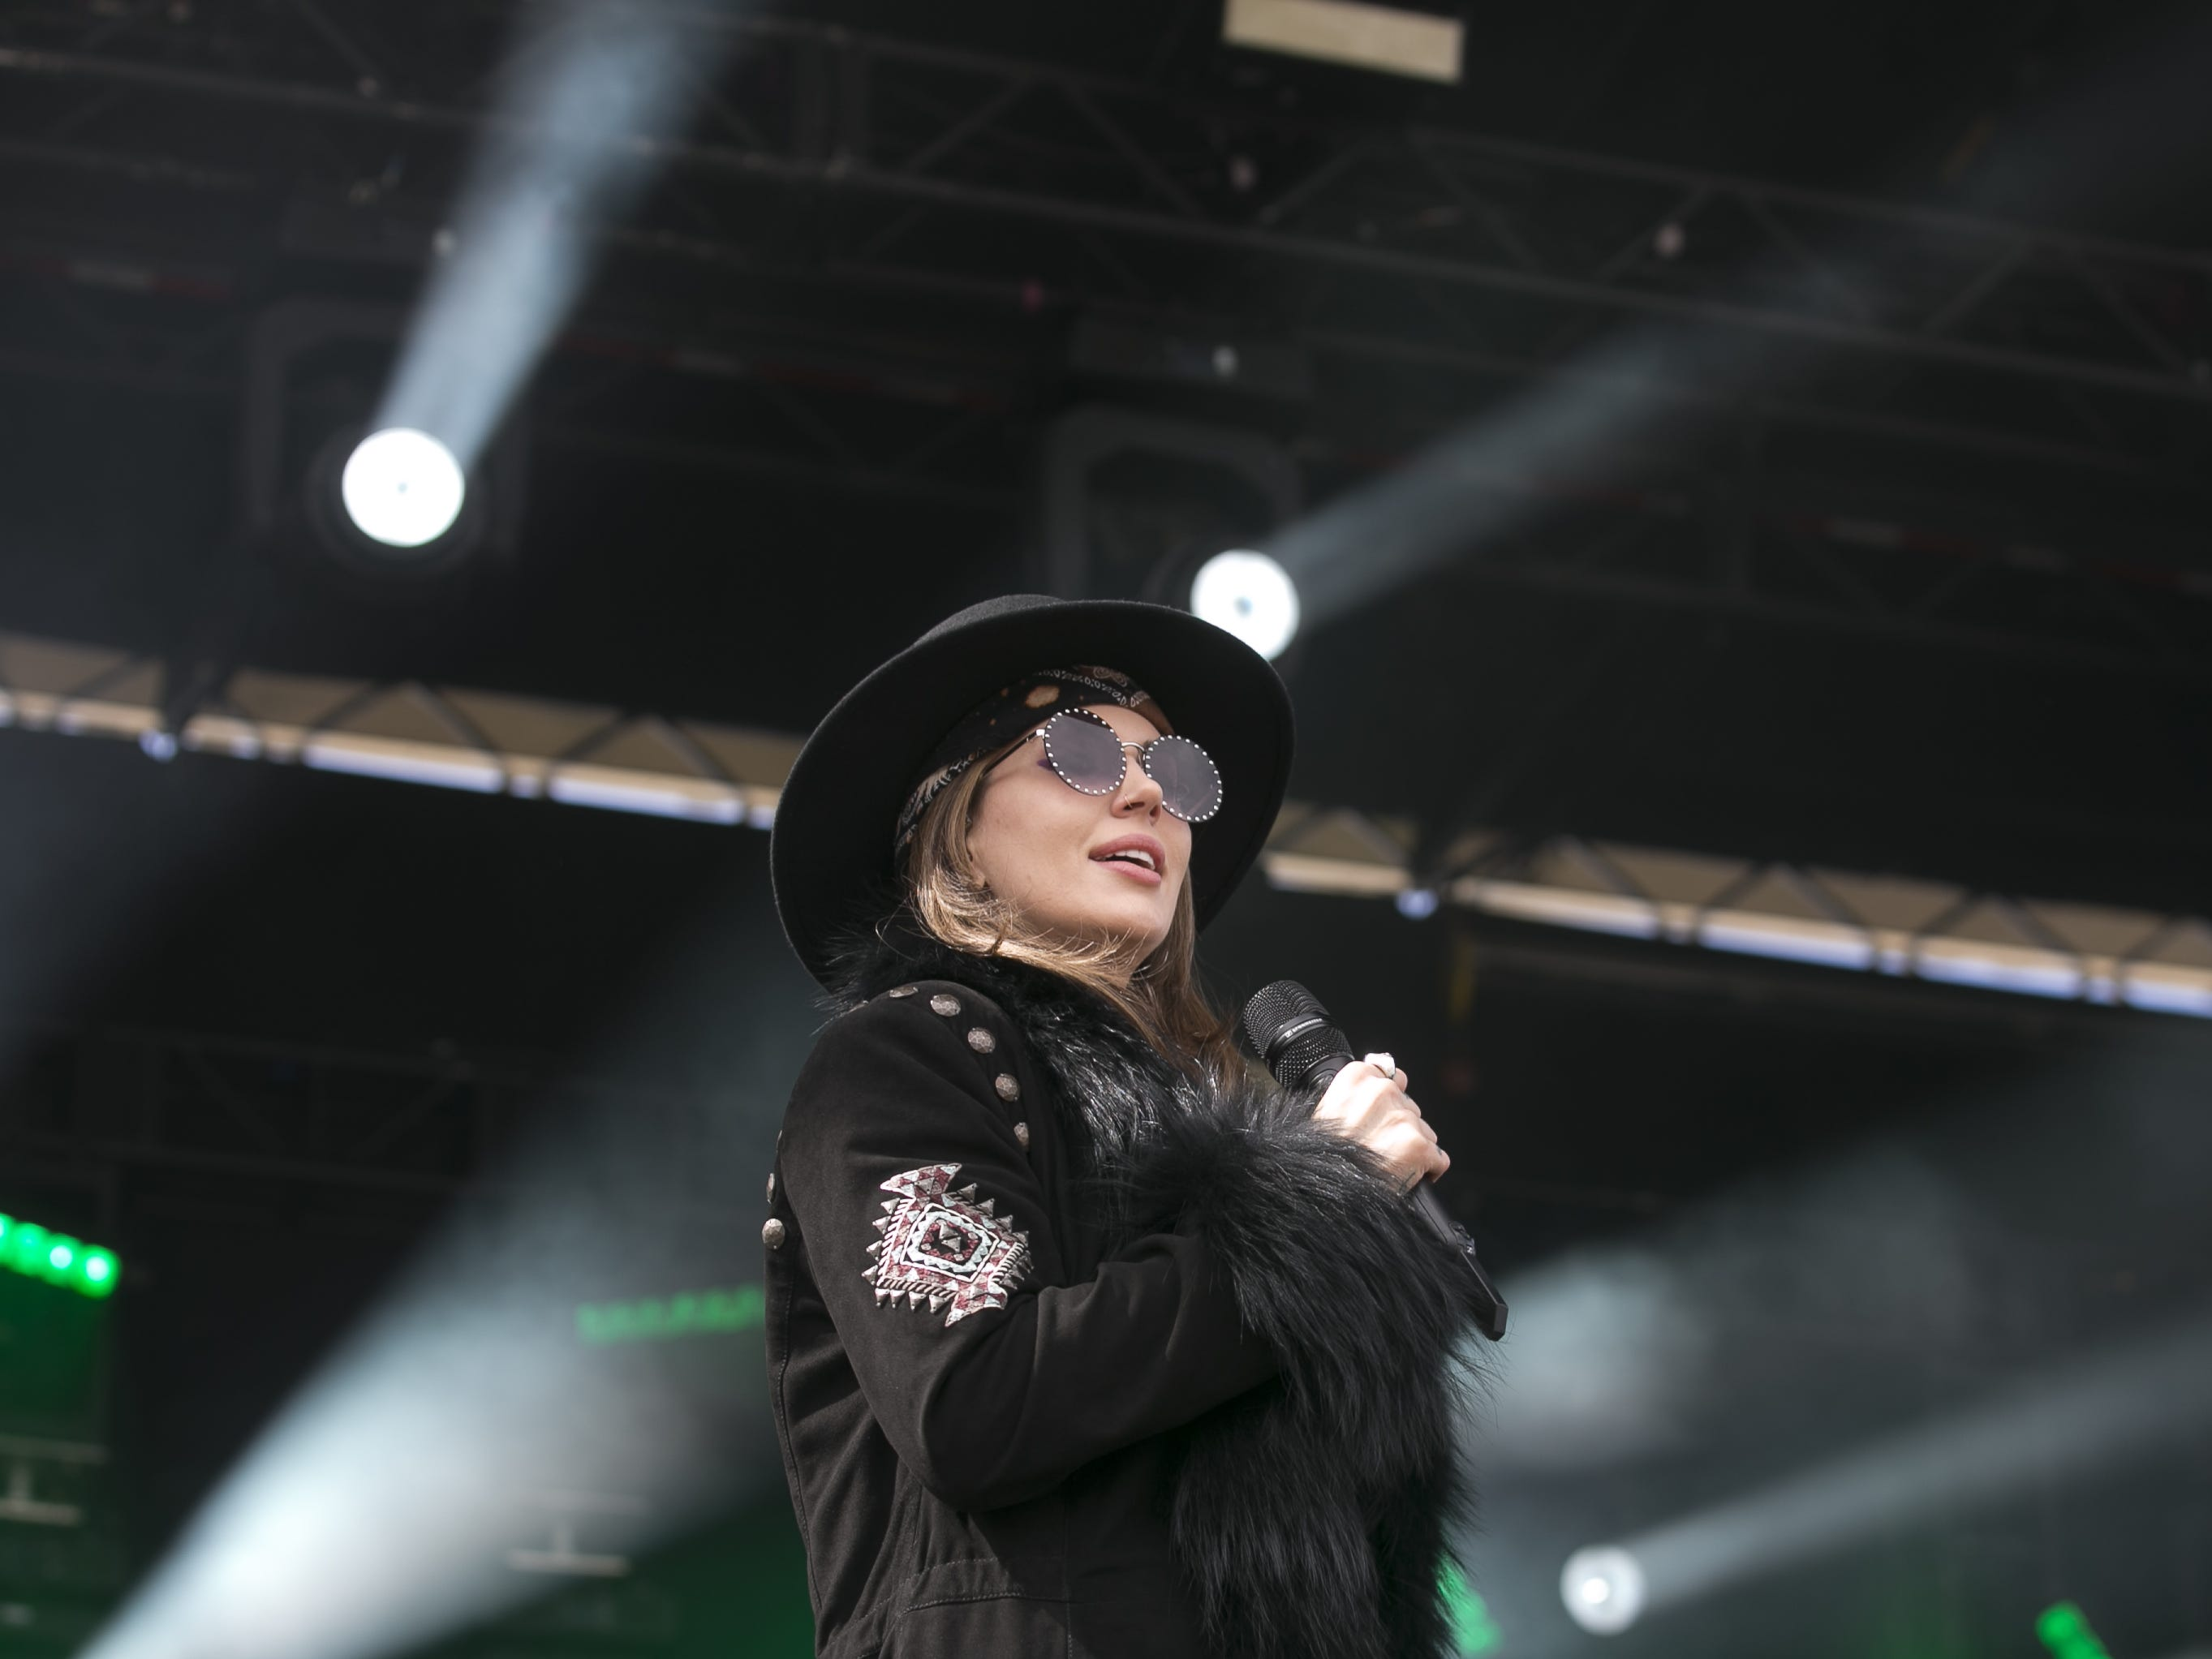 Dorothy and her band perform at the Innings Festival at Tempe Beach Park on Saturday, March 2, 2019.